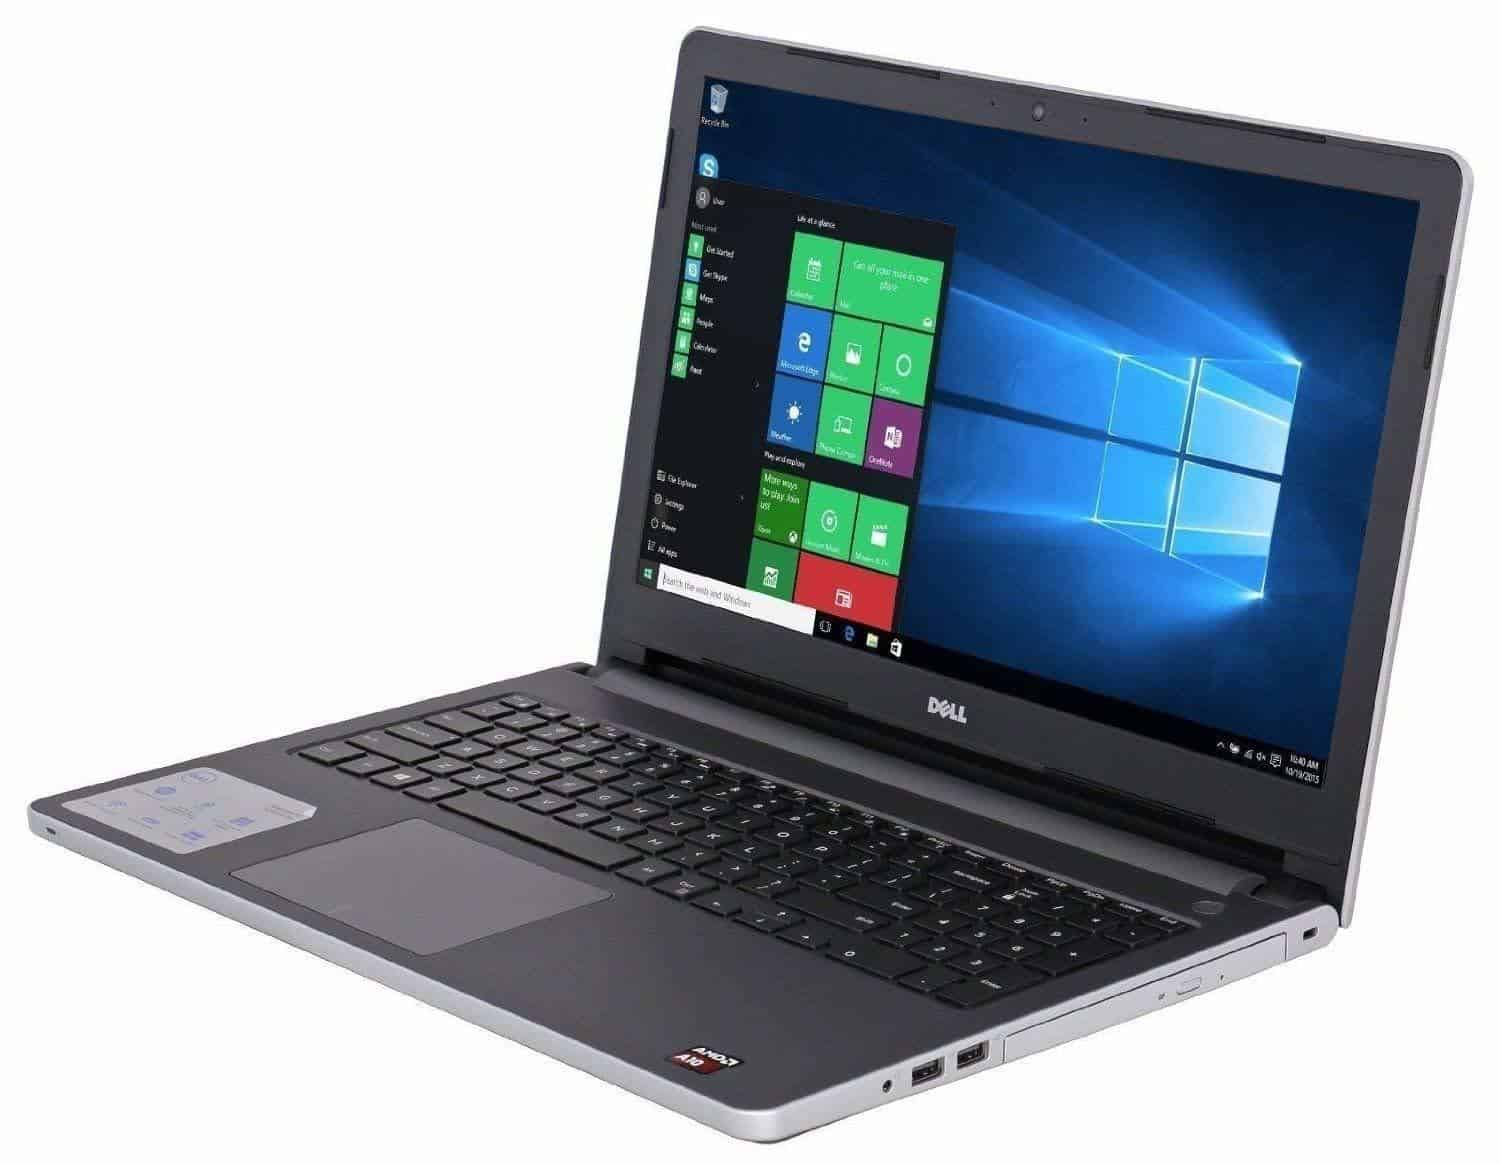 Dell Inspiron 15 Review